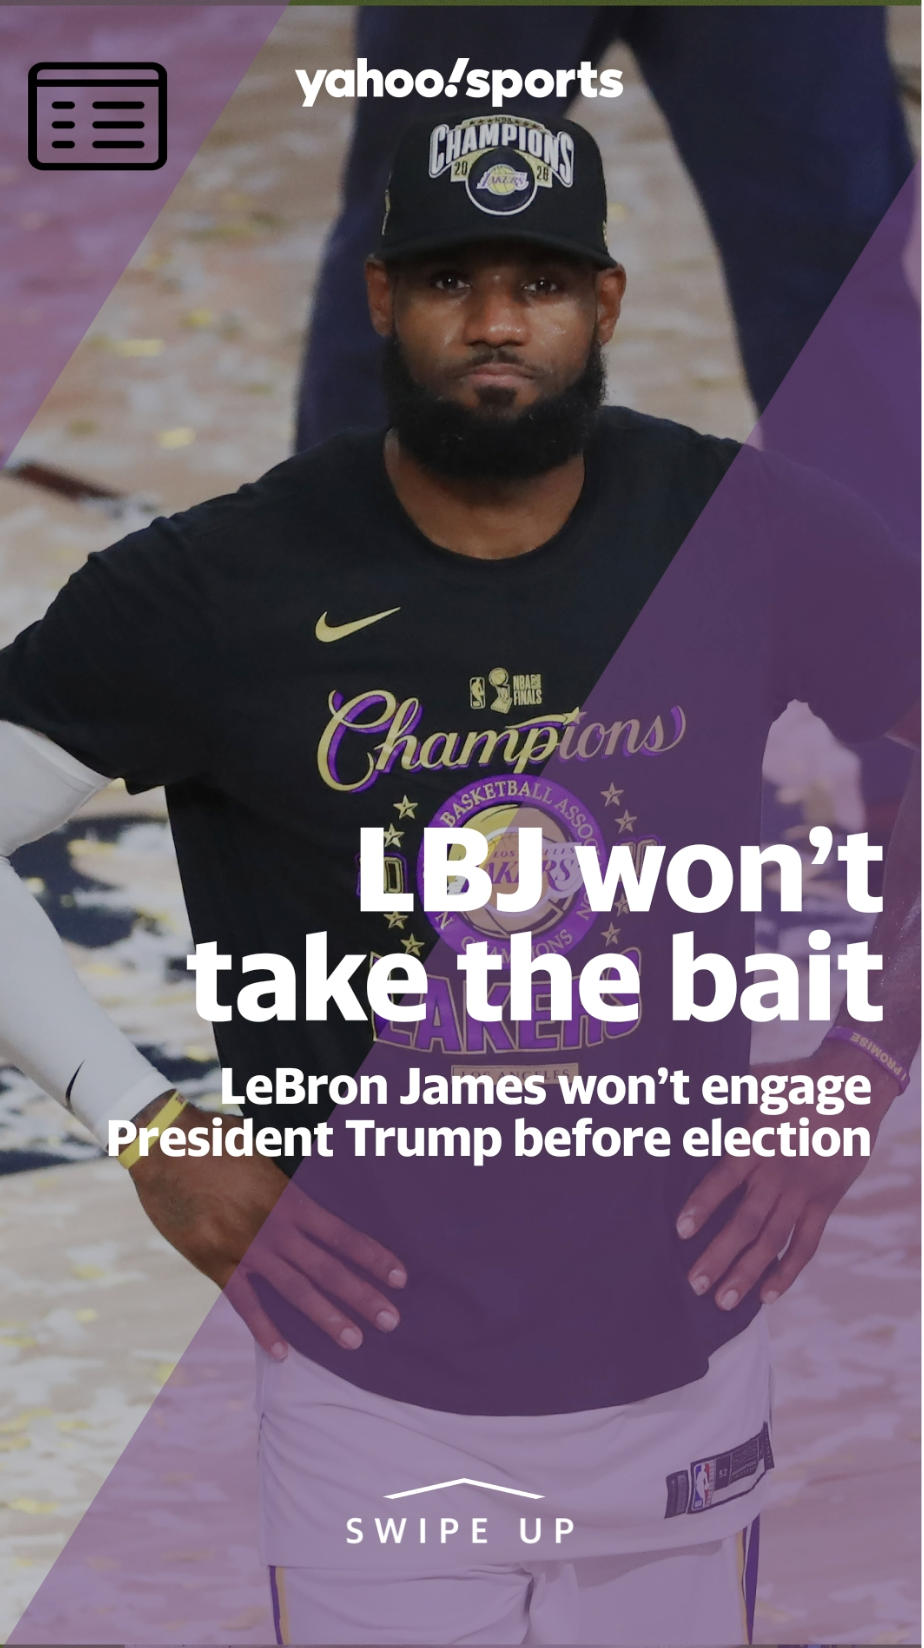 LeBron James won't engage President Trump before election: 'I damn sure won't go back and forth with that guy'